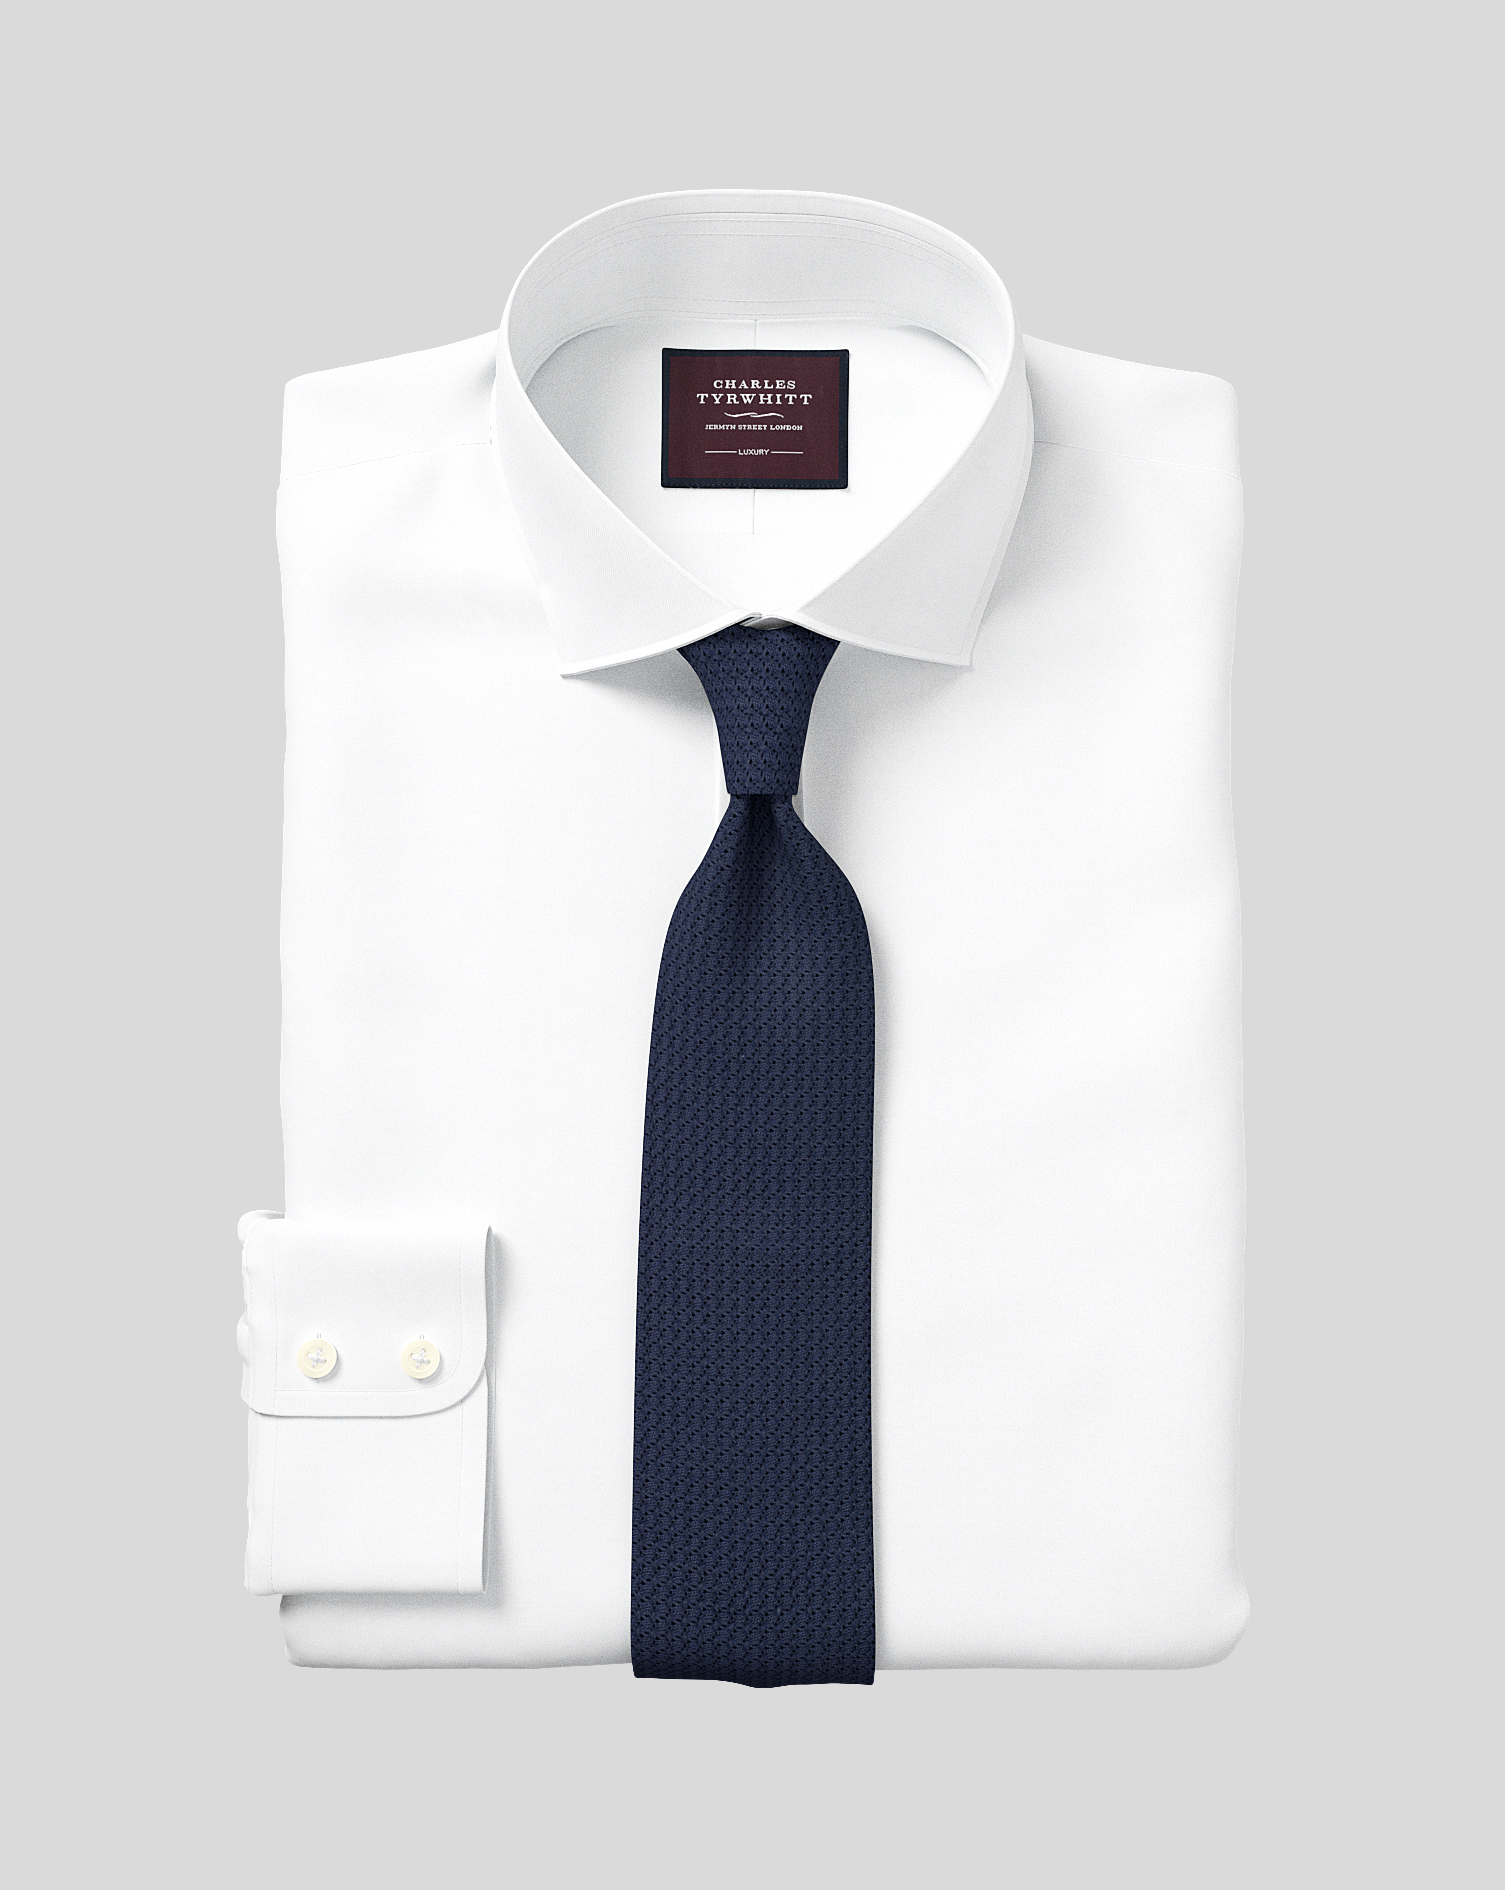 Classic Fit White Luxury Twill Egyptian Cotton Formal Shirt Double Cuff Size 17/34 by Charles Tyrwhi